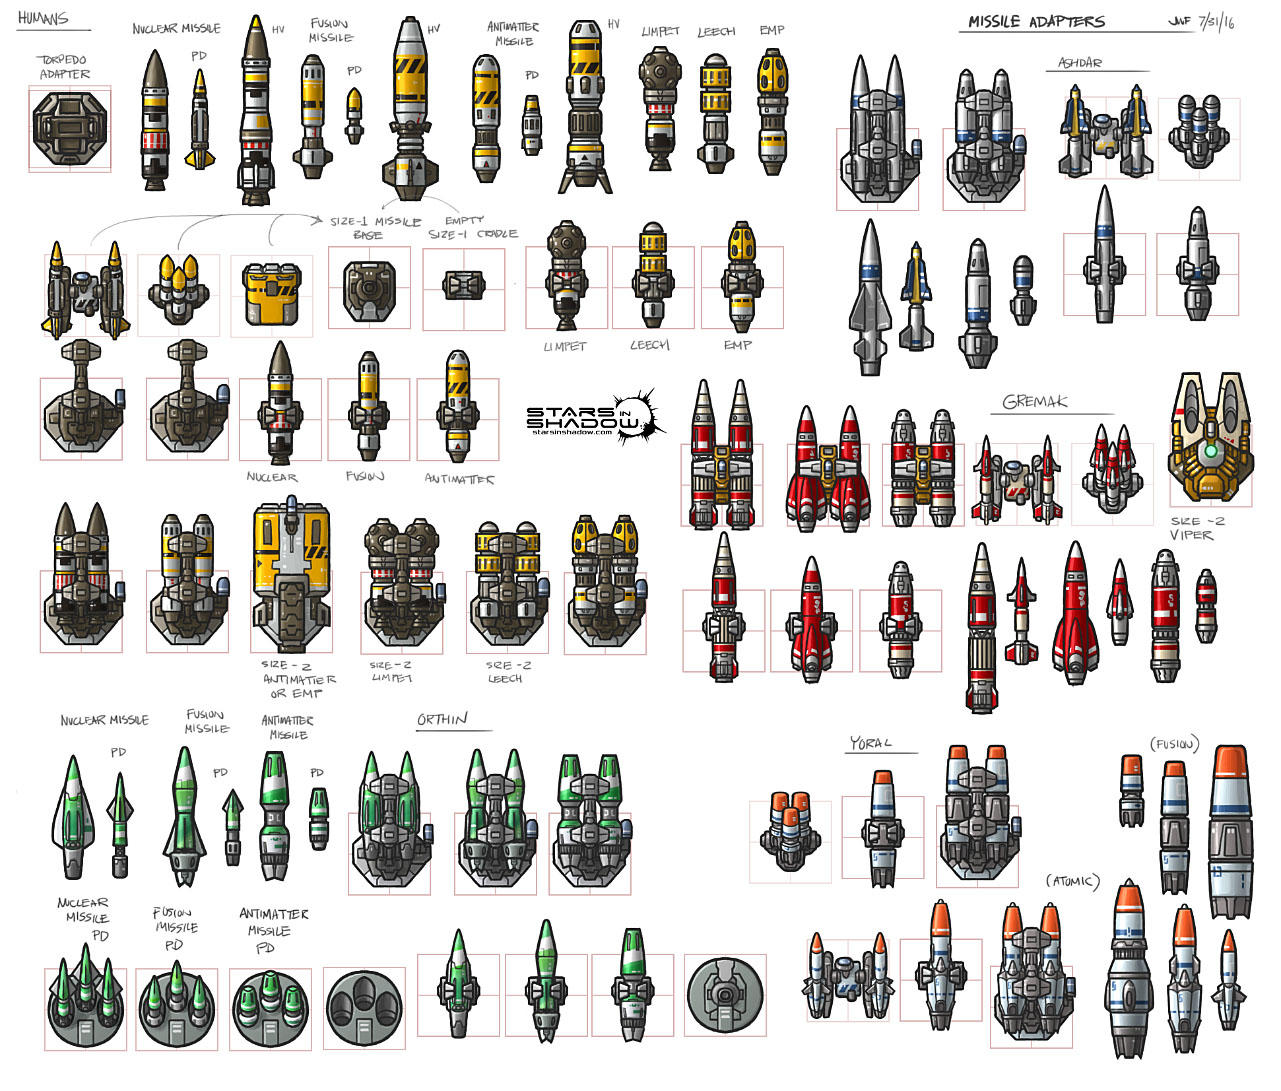 Stars in Shadow: Missile Variants by AriochIV